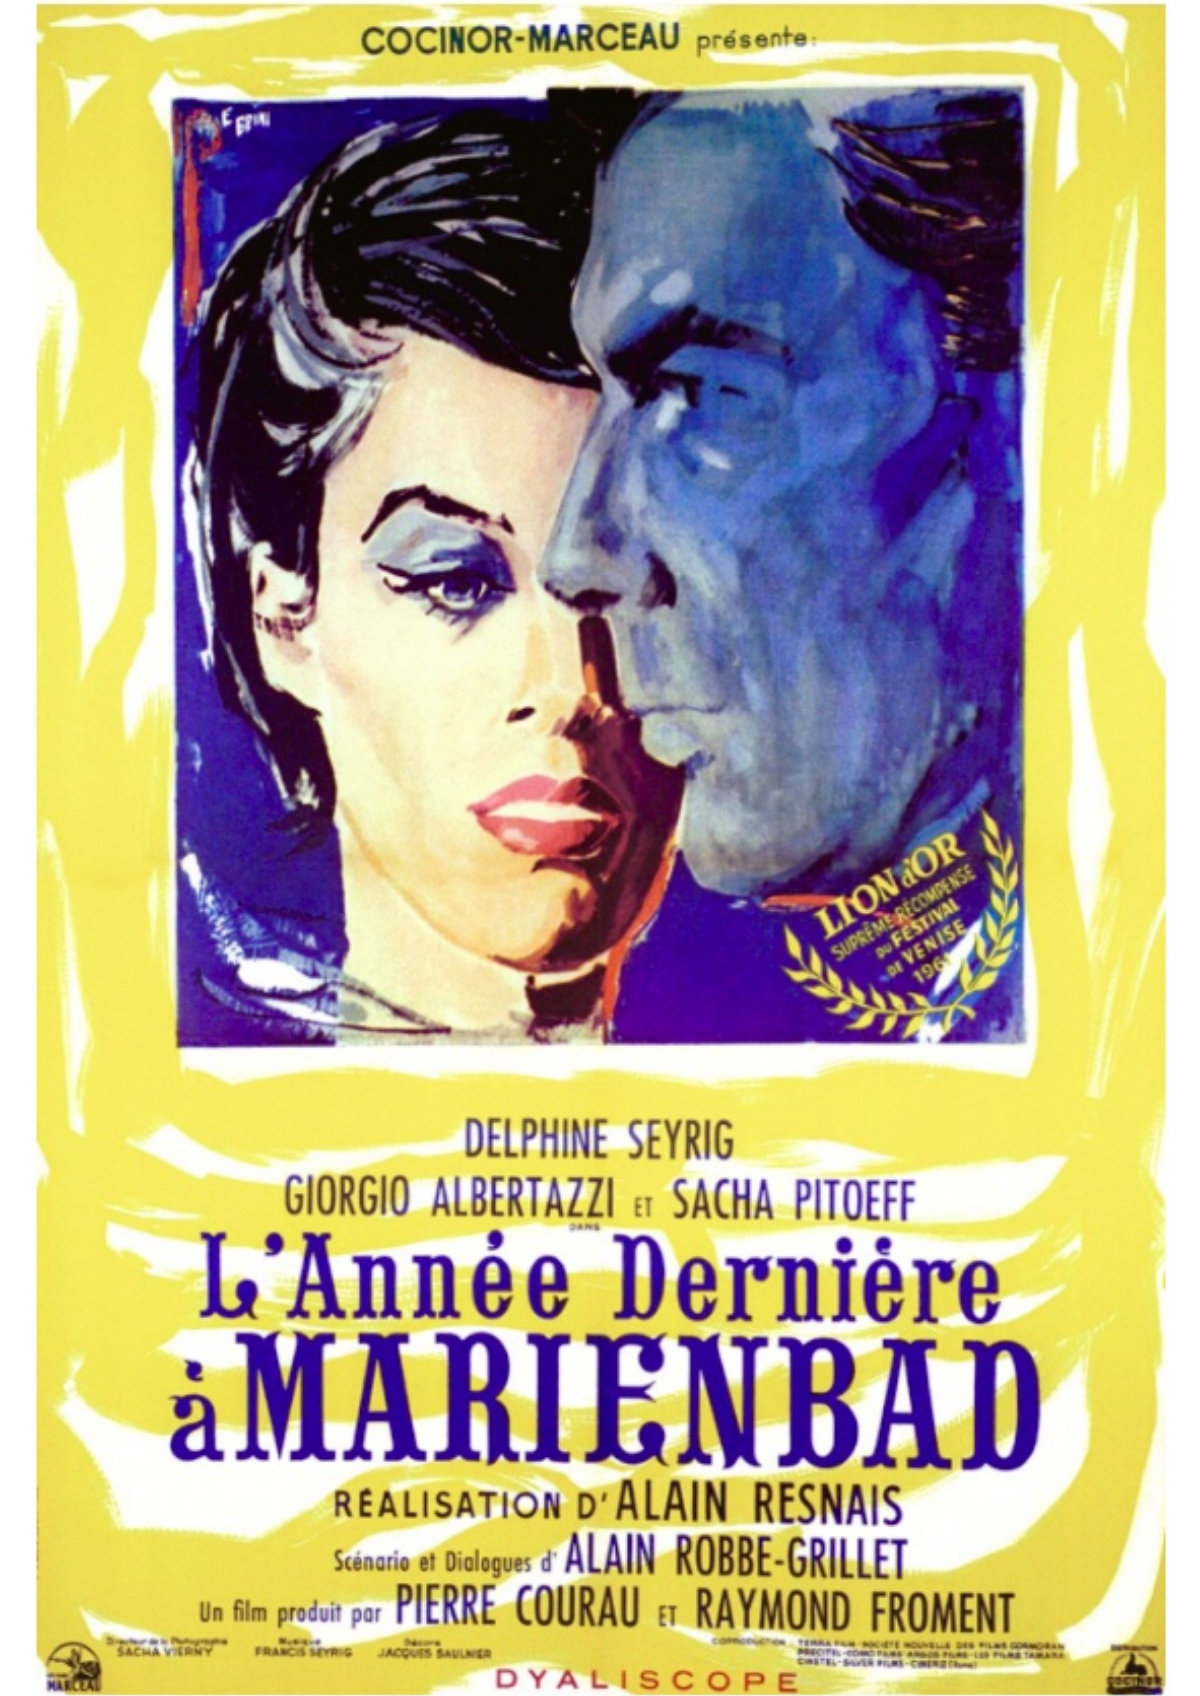 'Last Year At Marienbad (L'Annee Derniere A Marienbad)' movie poster